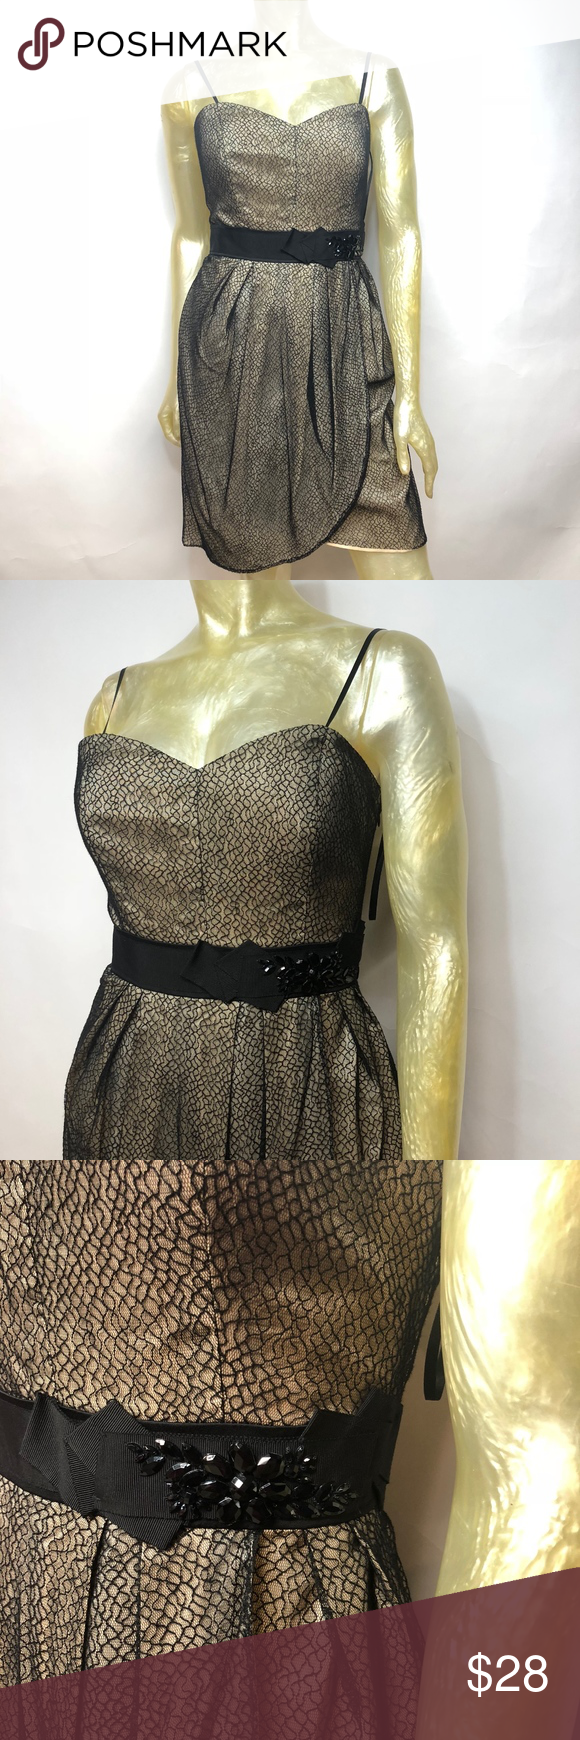 Max And Cleo Black Tan Cocktail Dress Max And Cleo Spaghetti Strap Lace Lined Cocktail Dress Women S Size 8 In Womens Cocktail Dresses Clothes Design Dresses [ 1740 x 580 Pixel ]